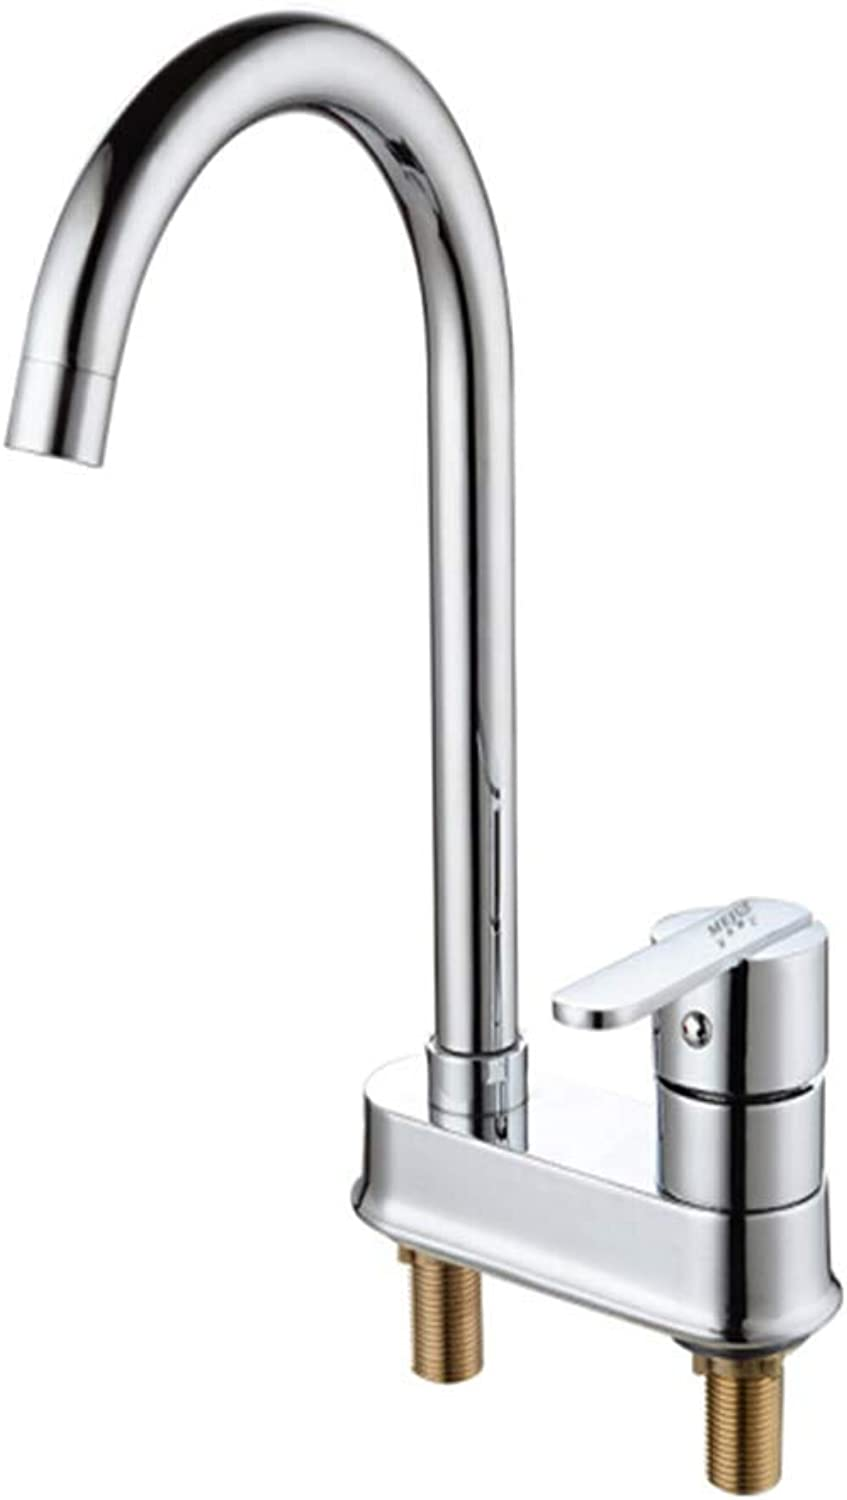 Kitchen Taps Faucet Modern Kitchen Sink Taps Stainless Steelsingle Double-Hole Cold and Hot Water Faucet 360 Degree redary Basin Faucet Washbasin Faucet